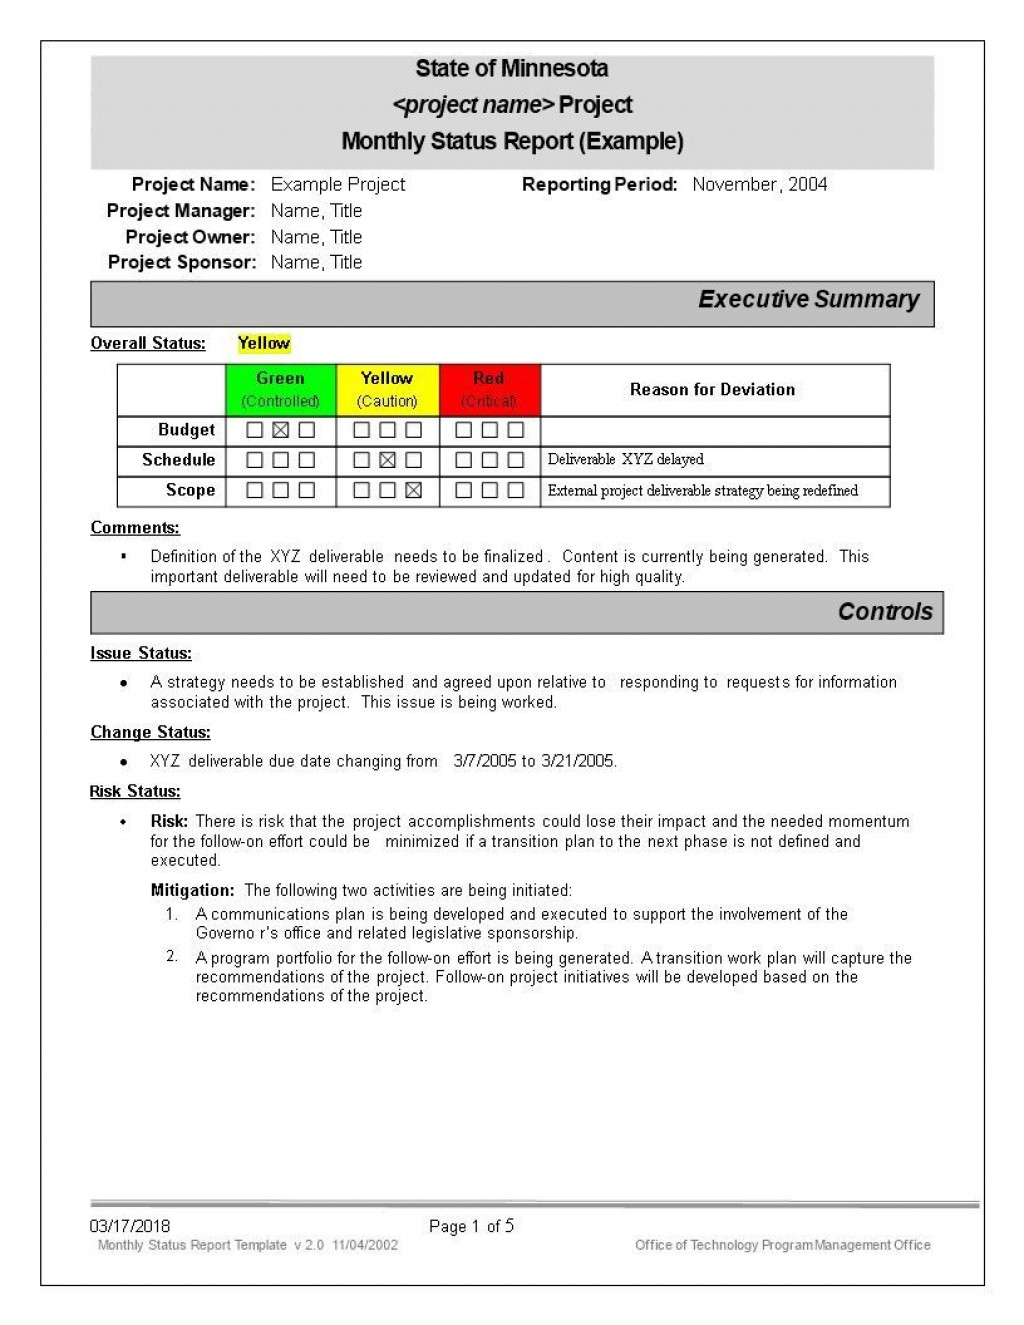 006 Incredible Project Management Monthly Progres Report Template Example Large